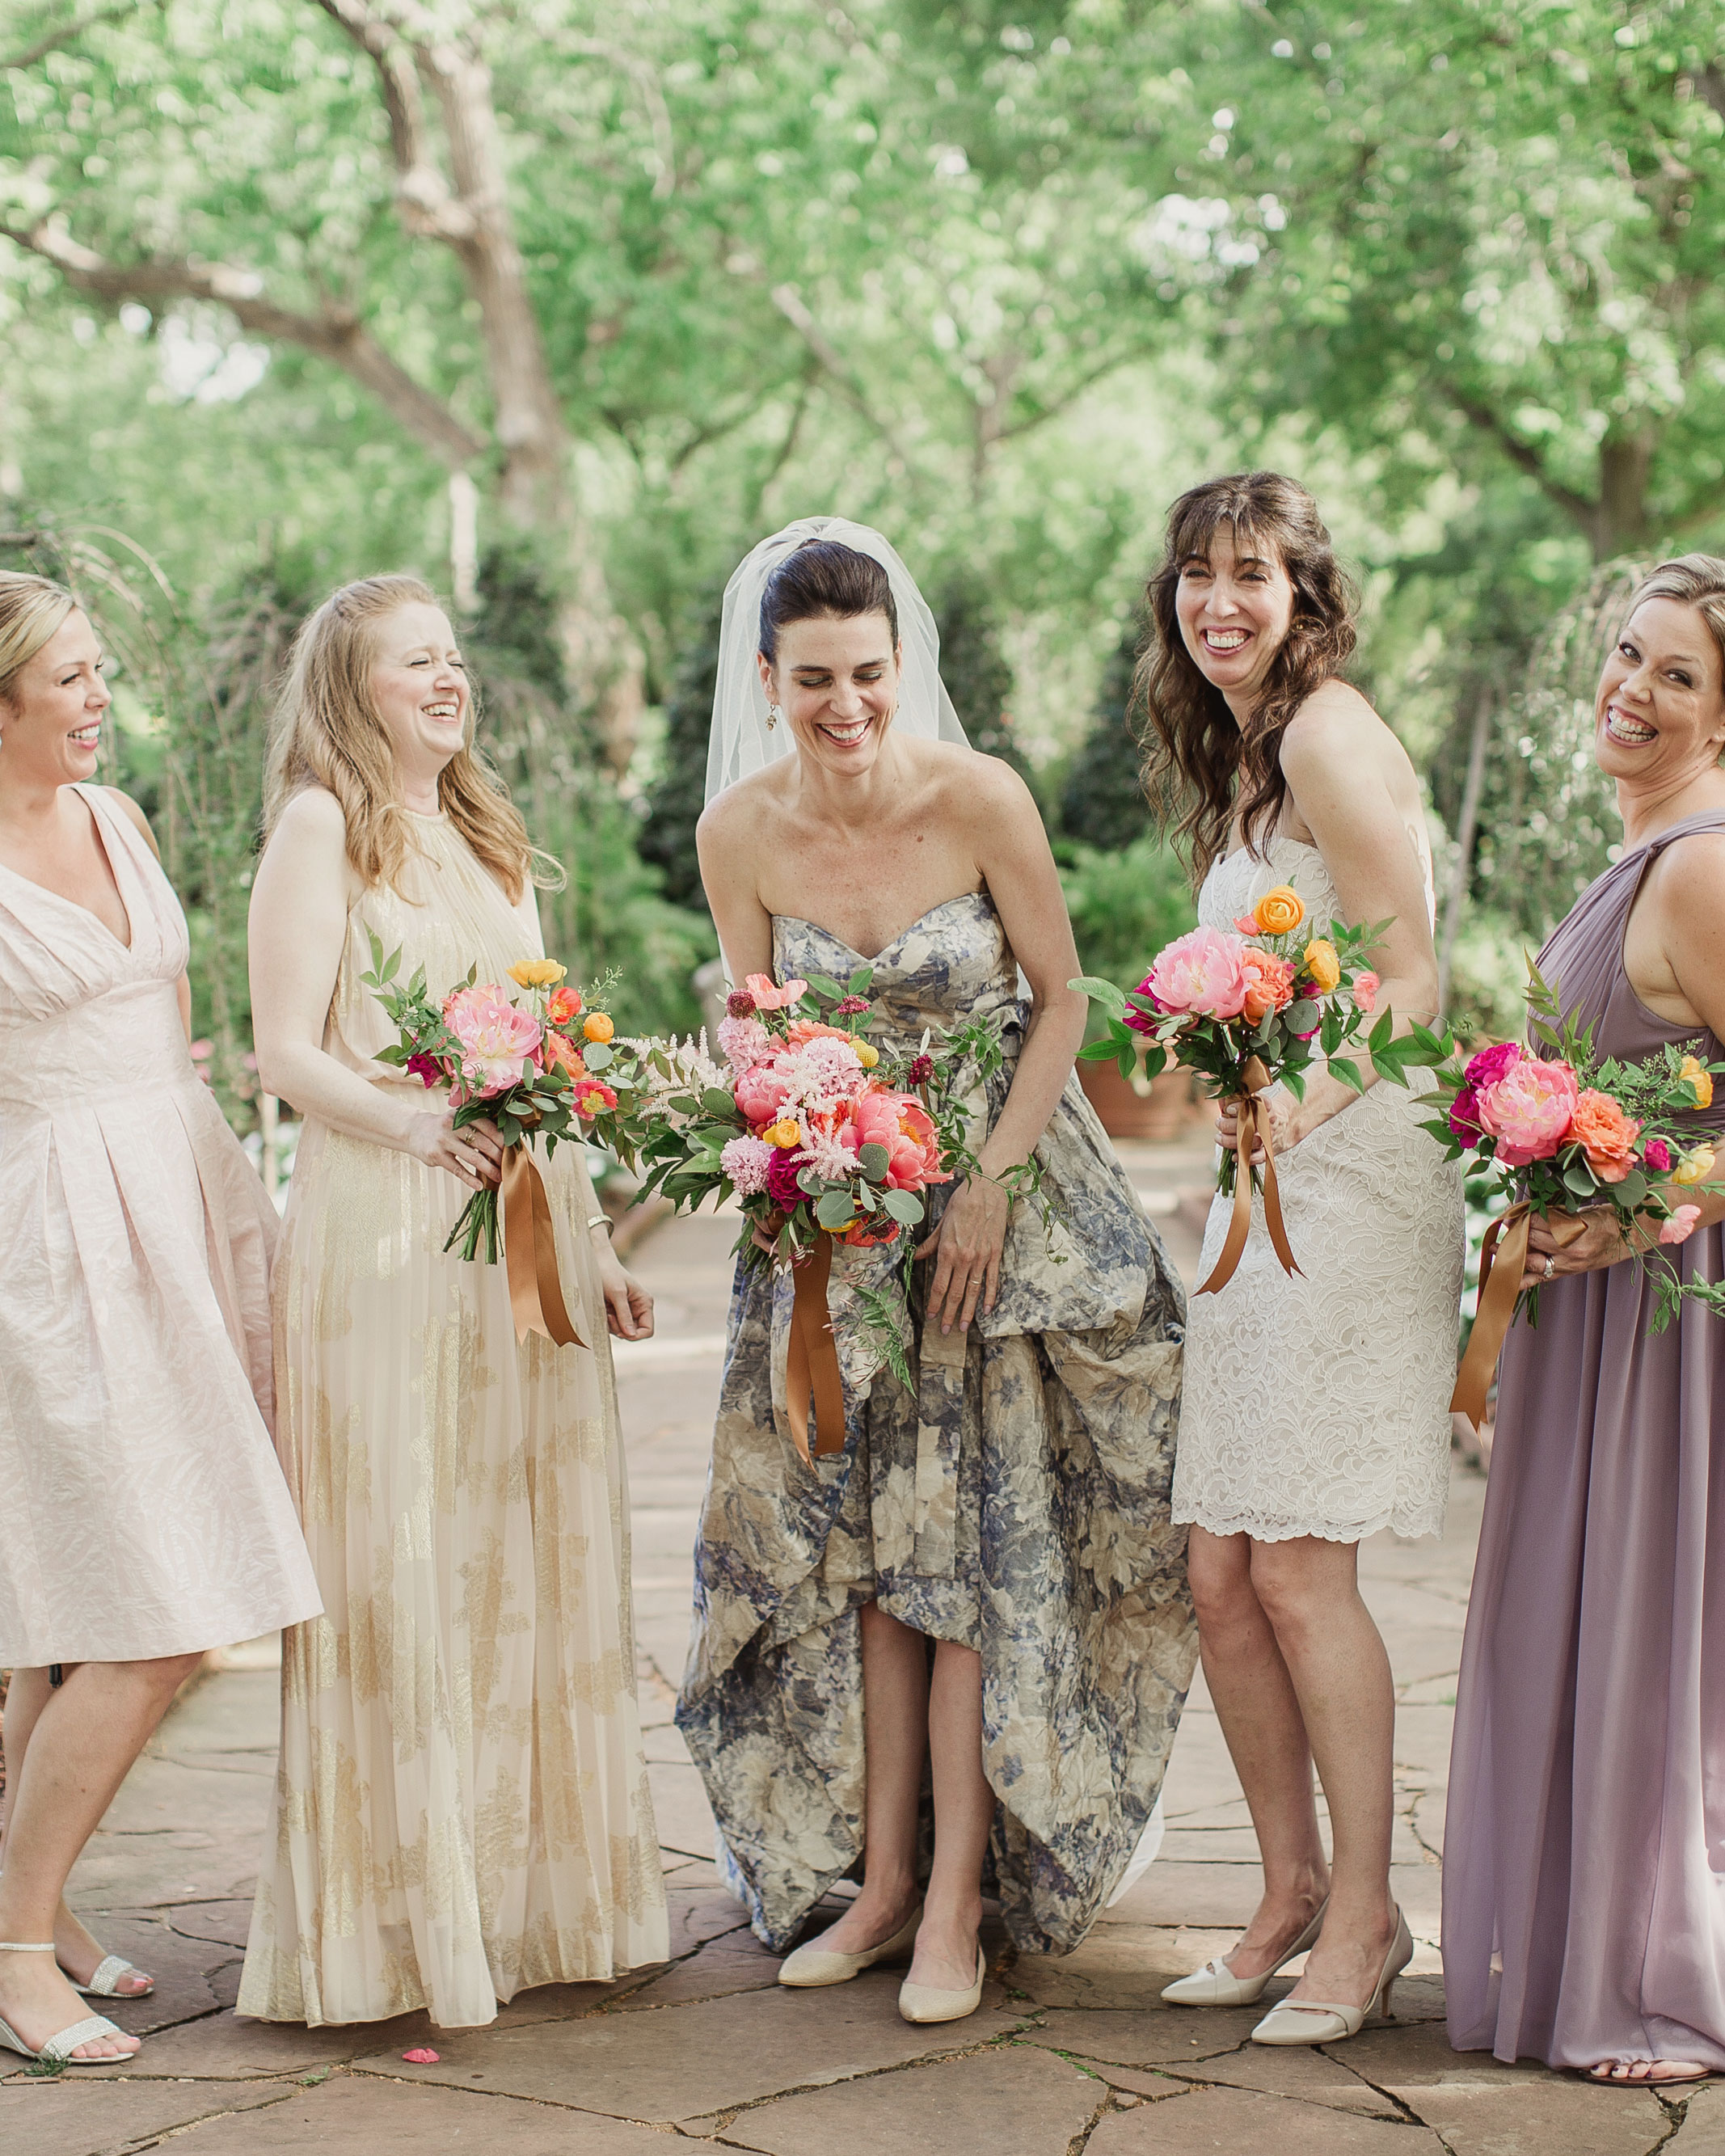 tara-dan-wedding-texas-bridesmaids-012-s112848.jpg